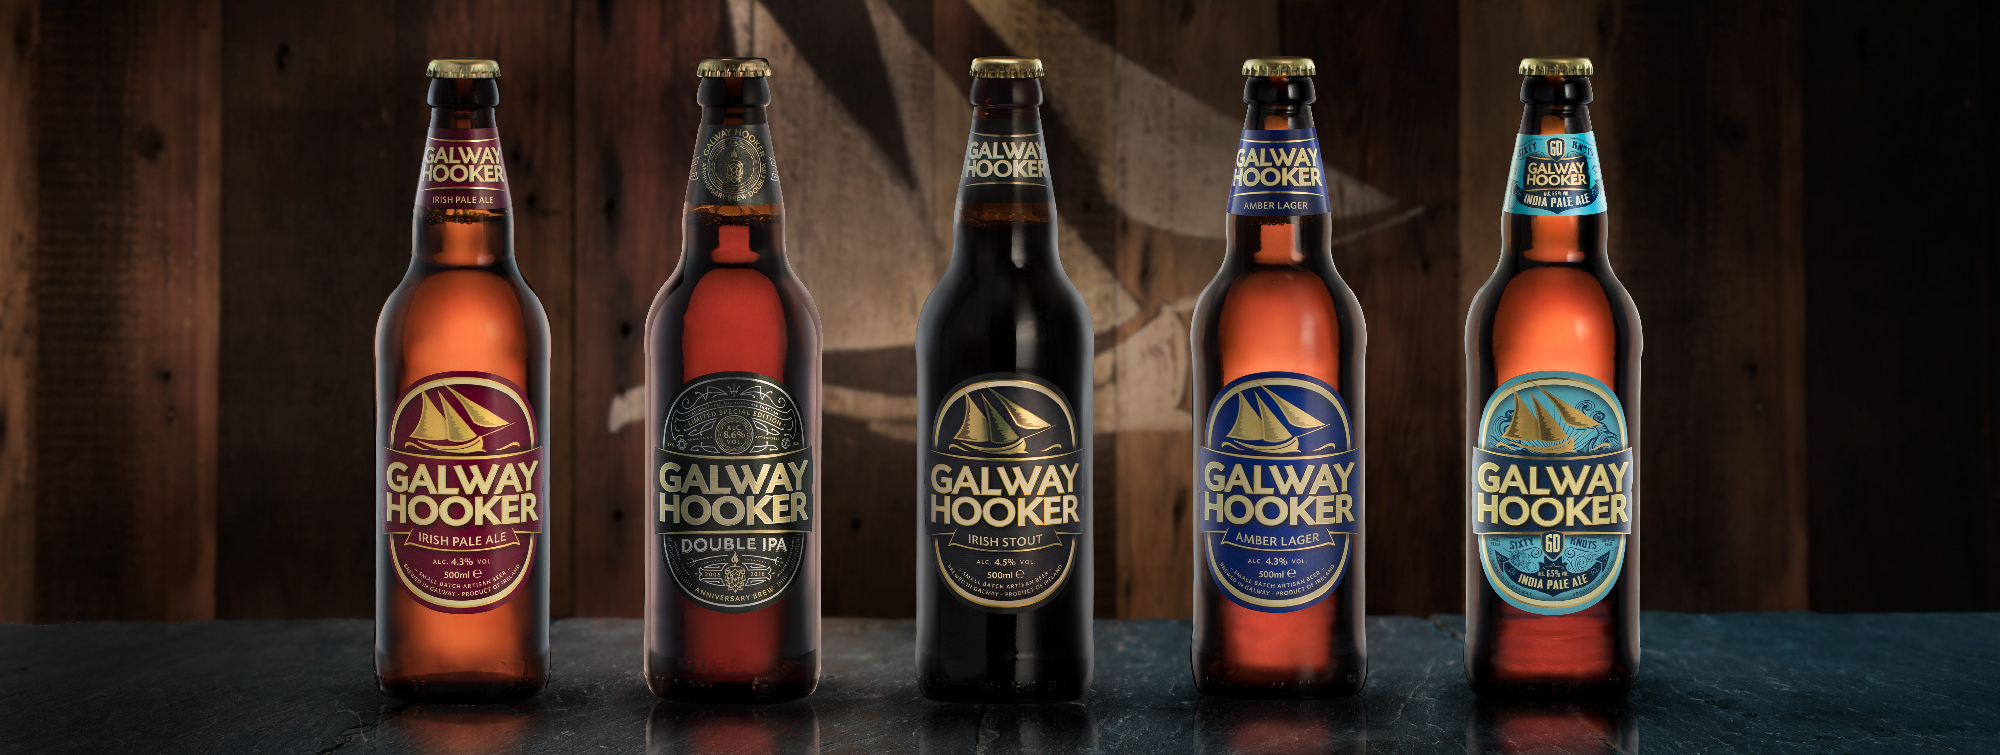 Galway Products Pdf